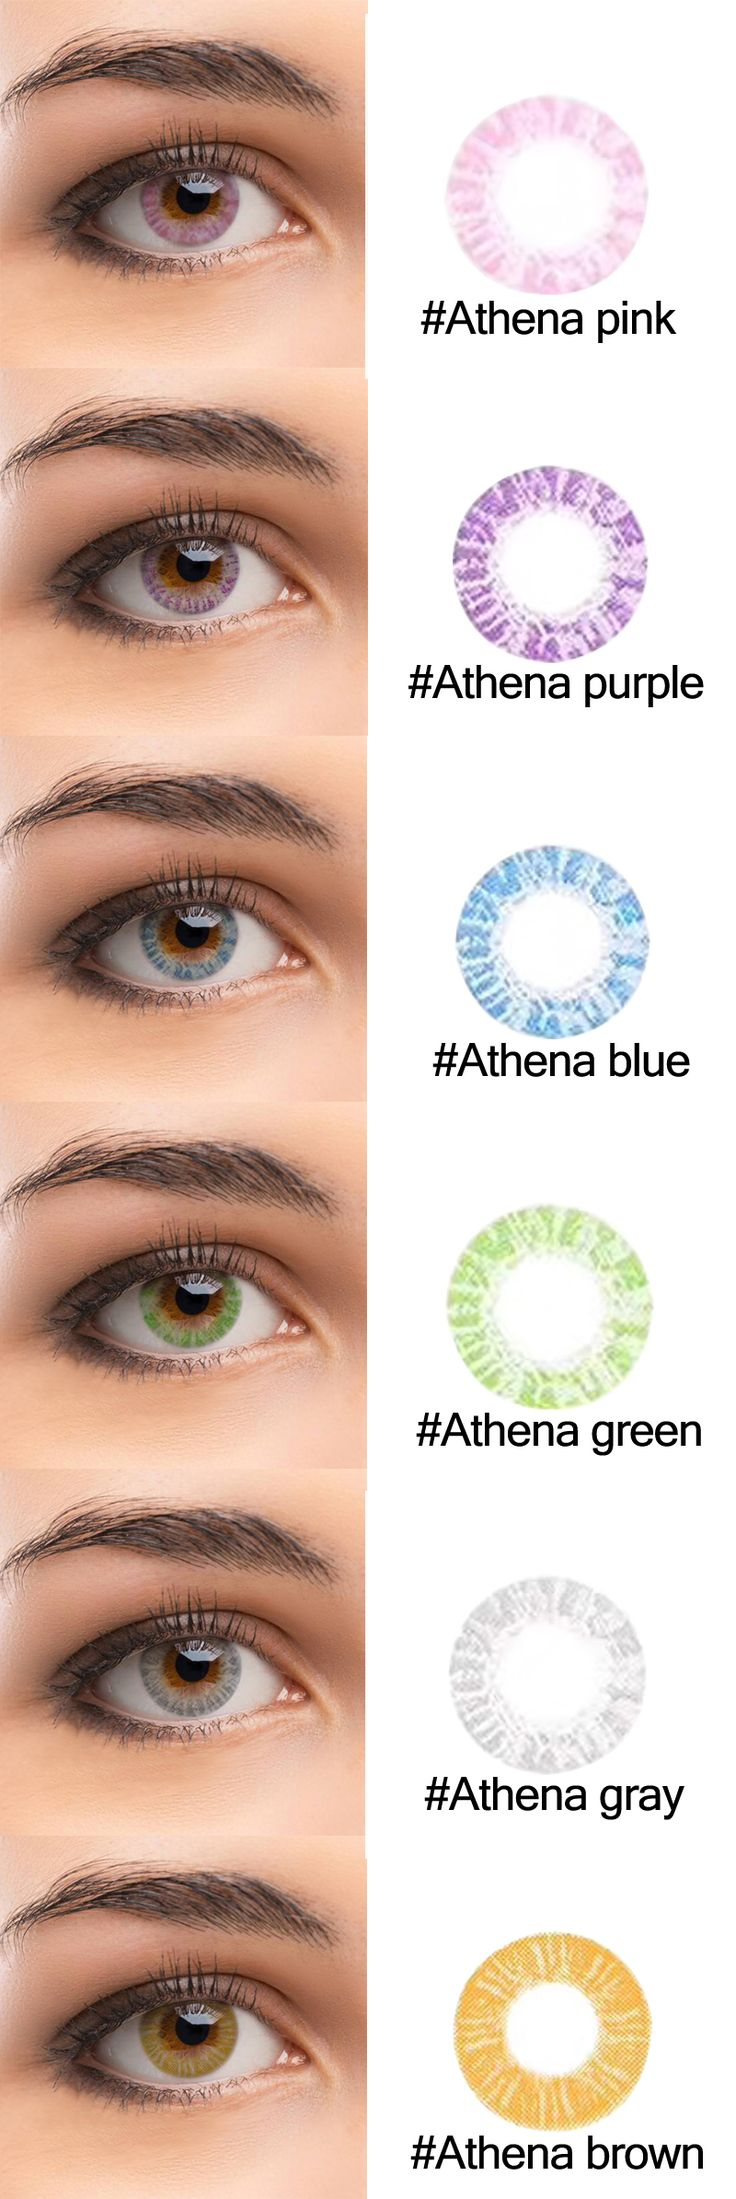 High-end brand @tolytolly. Athena Series colored lenses has six color for choose.There are Athena gray ,Athena green ,Athena purple,Athena pink ,Athena blue and Athena brown.I hope you will like it.Life is colorful,you only need colorful eyes to watch it.